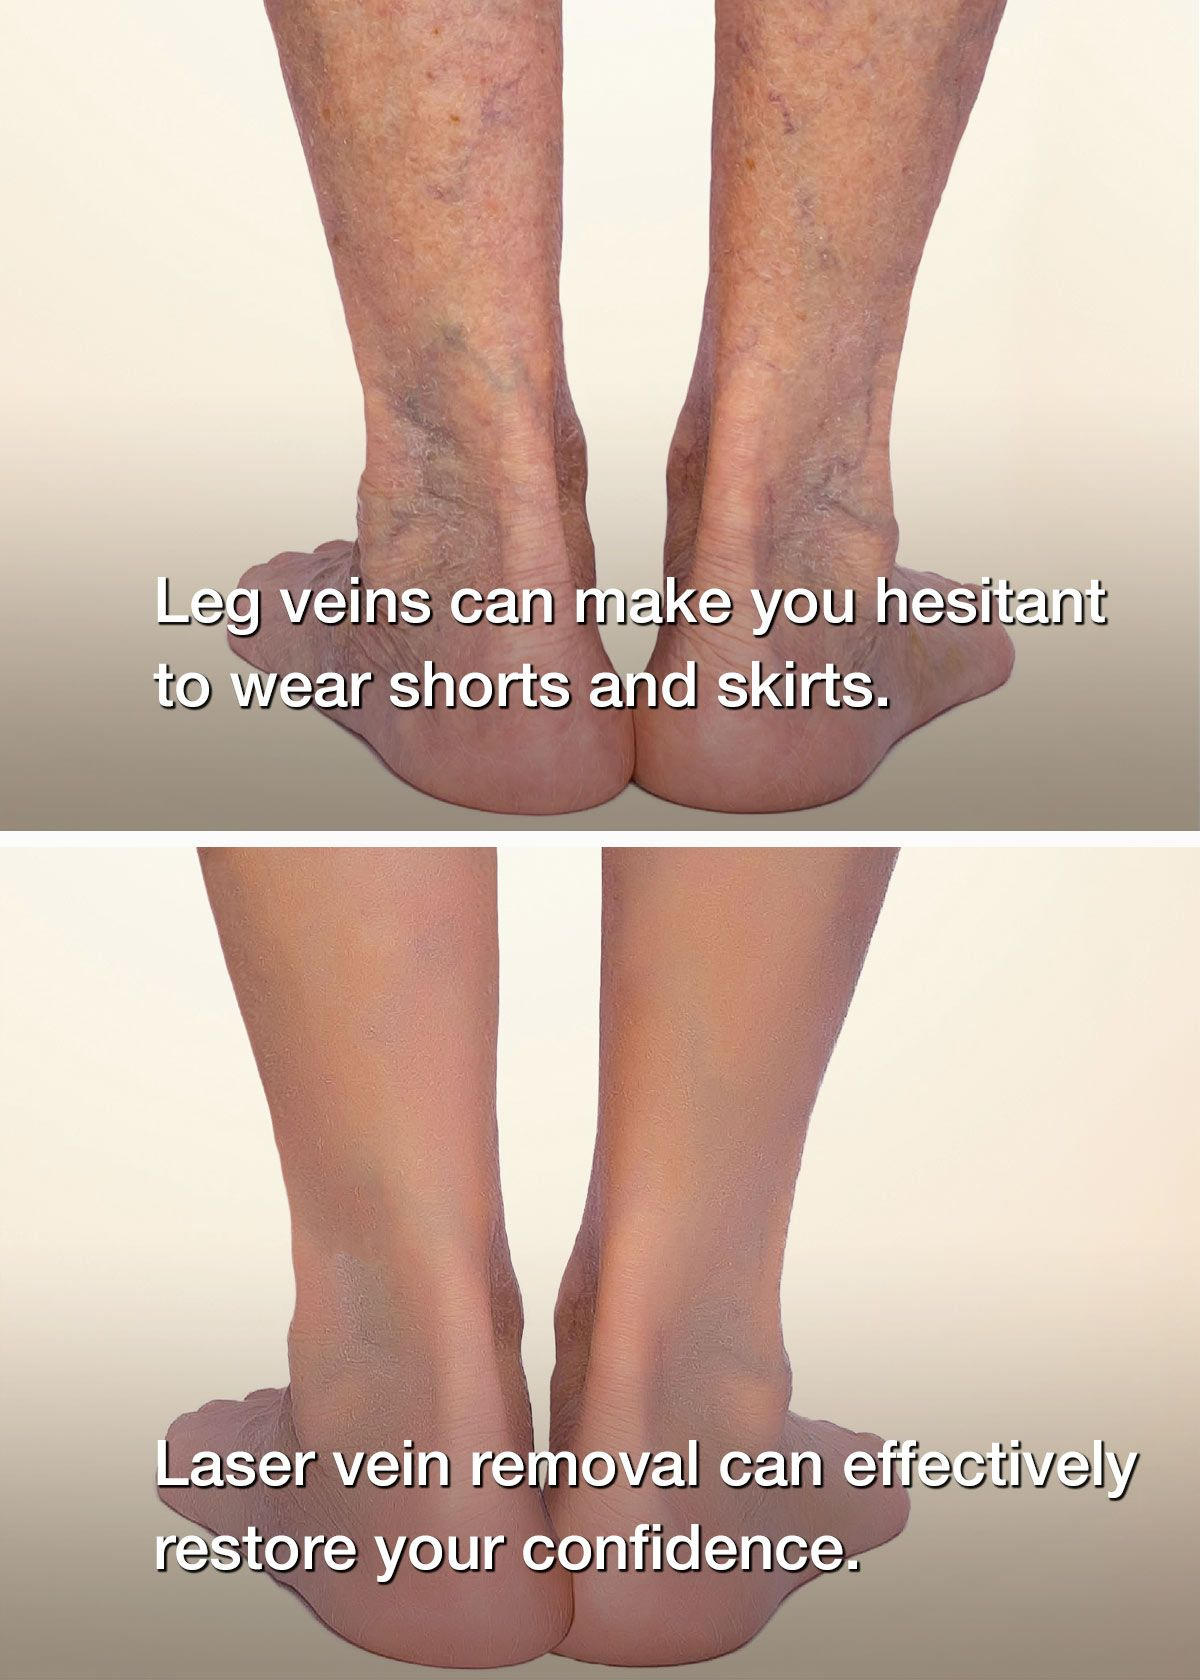 Before and after: legs with and without spider veins